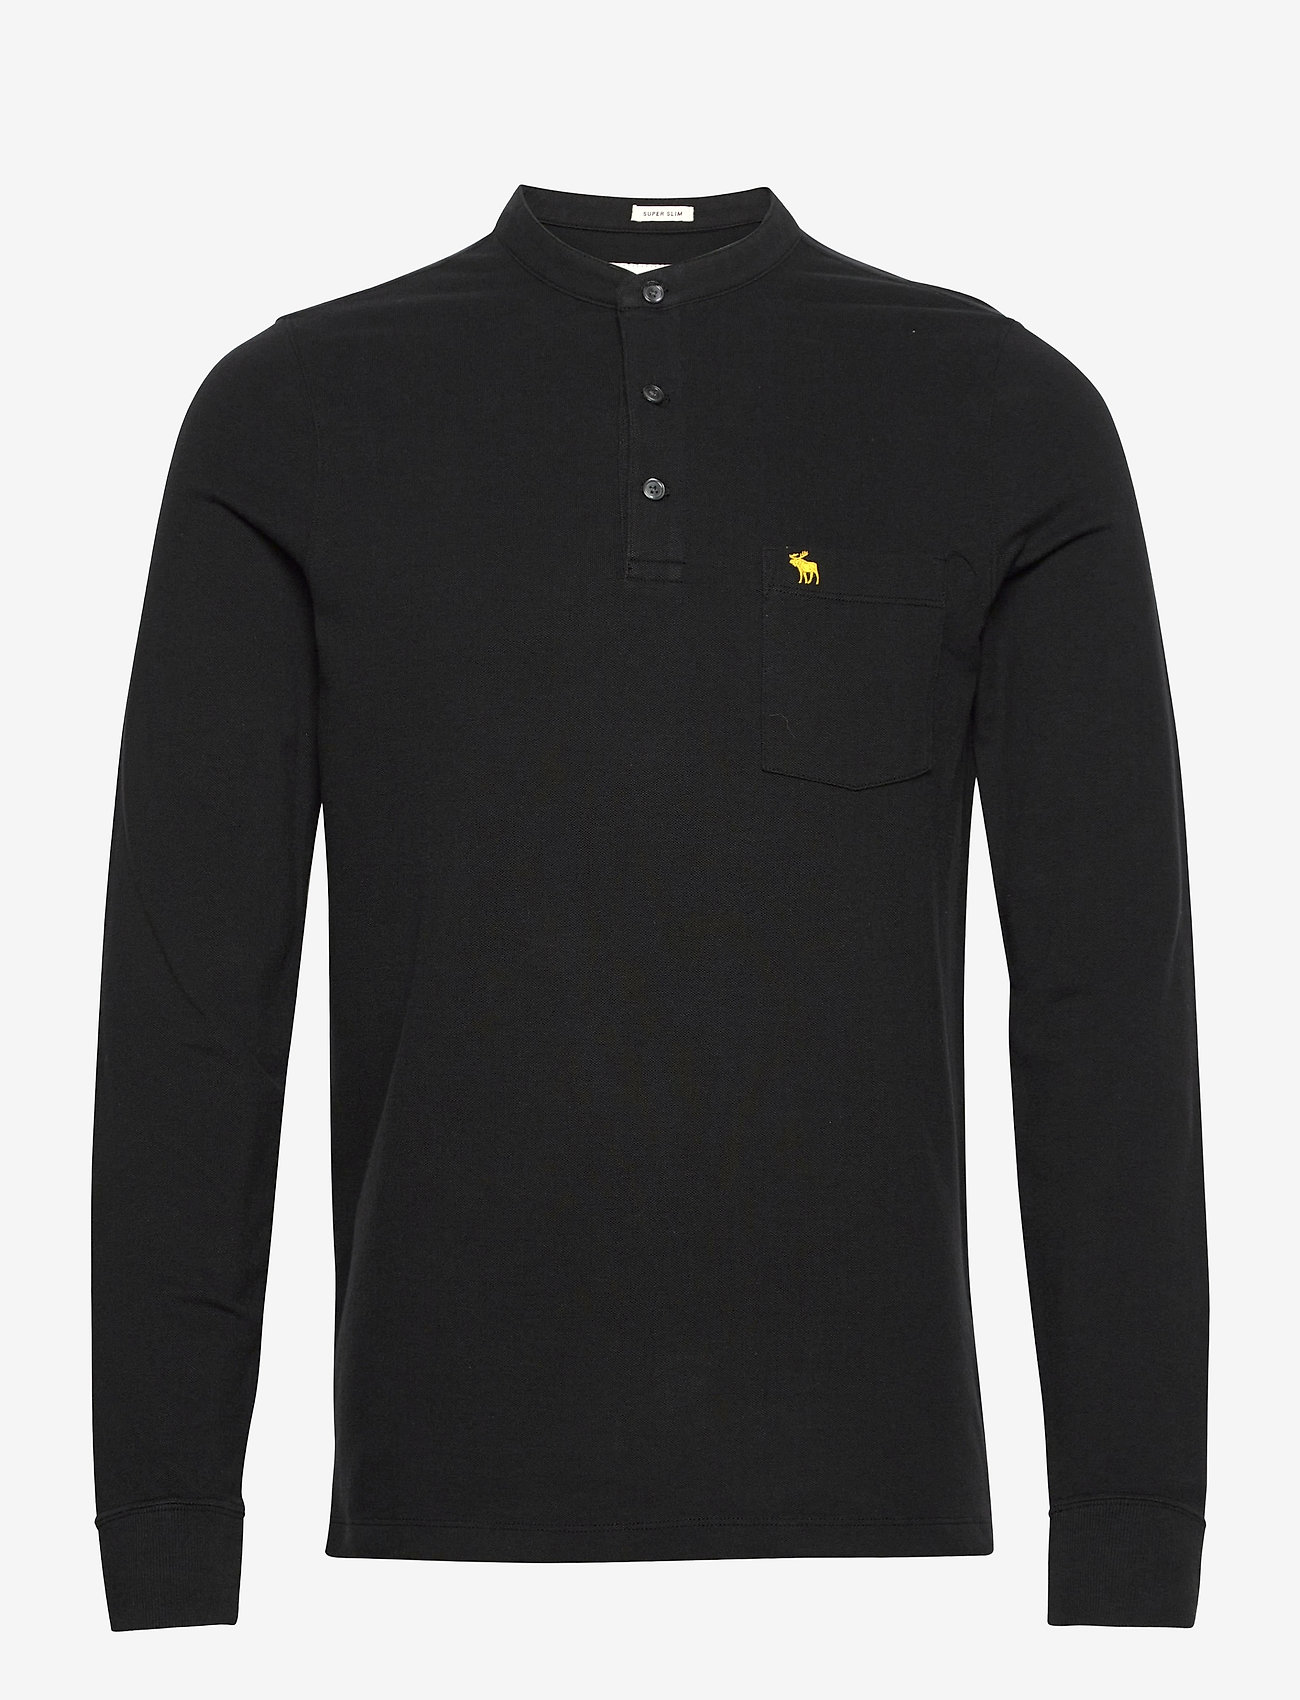 Abercrombie & Fitch - ANF MENS KNITS - half zip - black - 0